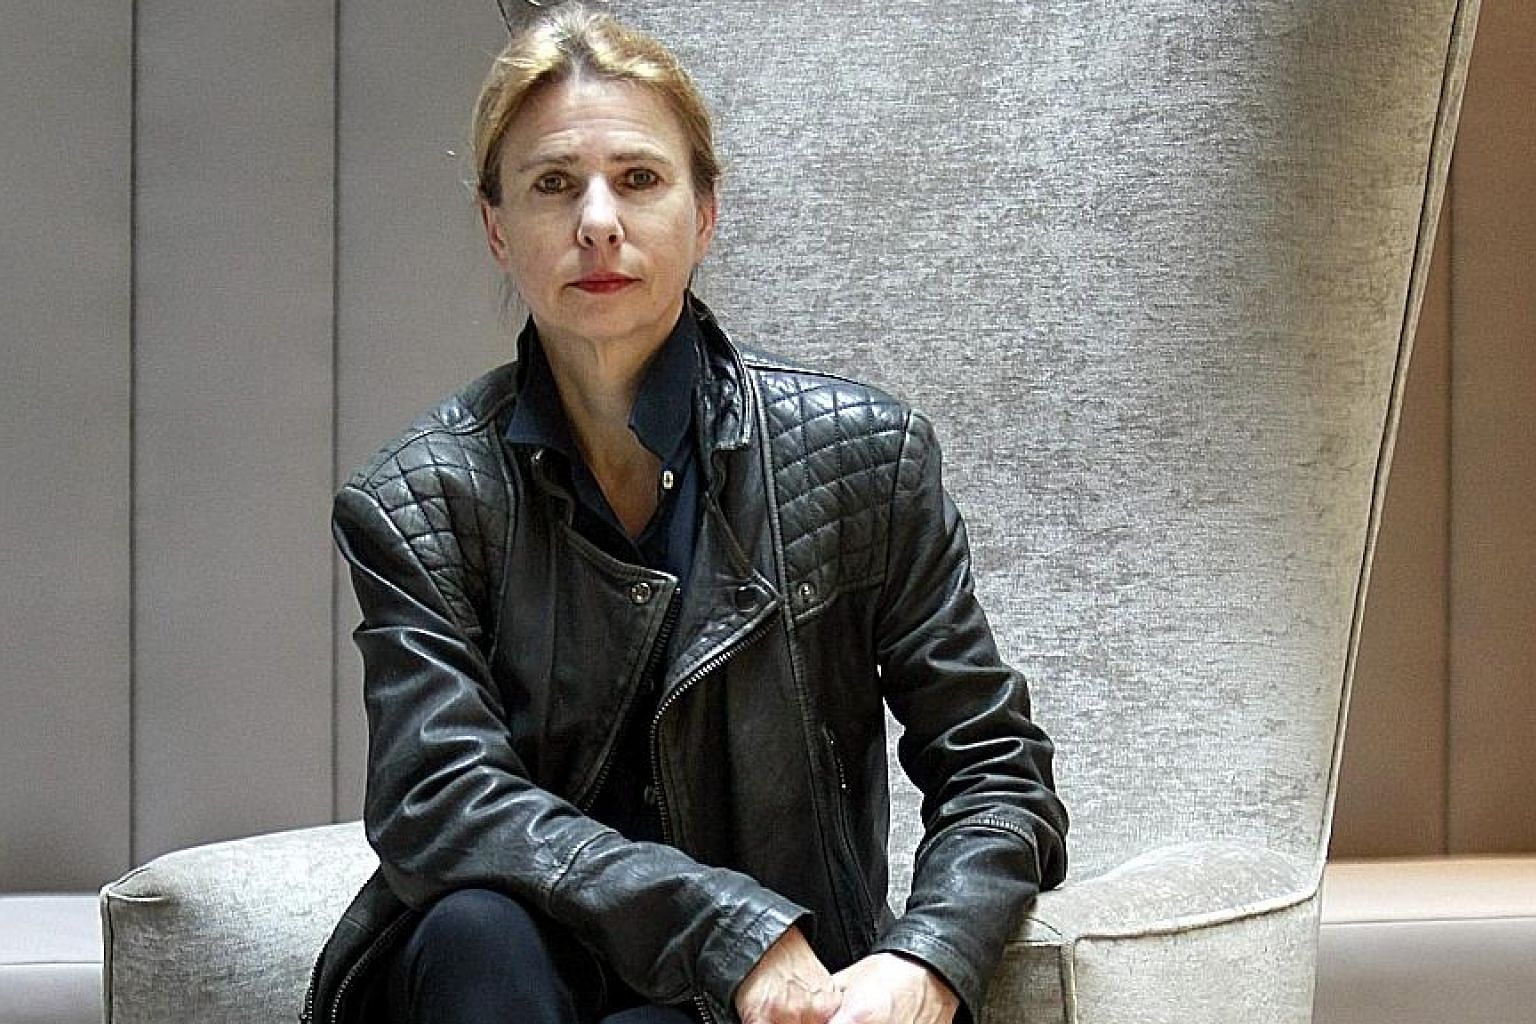 Besides holding a masterclass at the Singapore Writers Festival, author Lionel Shriver (above) will also speak on her latest book, The Mandibles: A Family, 2029-2047.